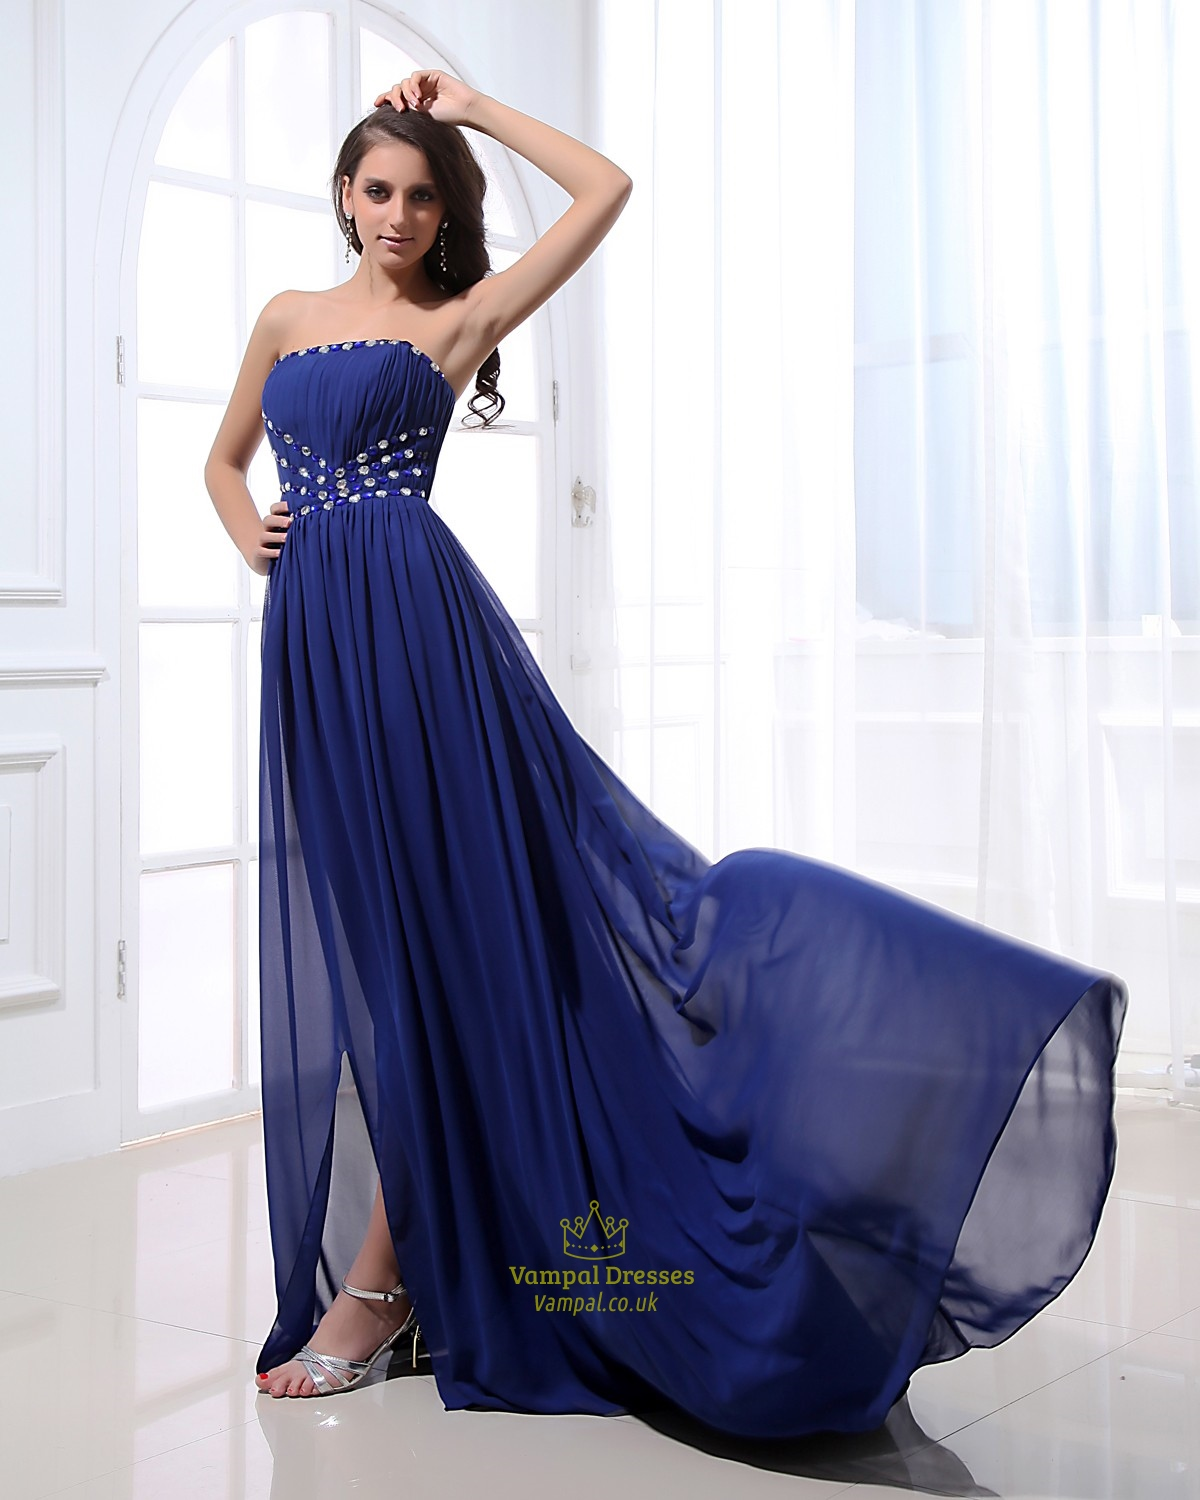 Strapless Royal Blue Prom Dresses With Rhinestones,Royal ...